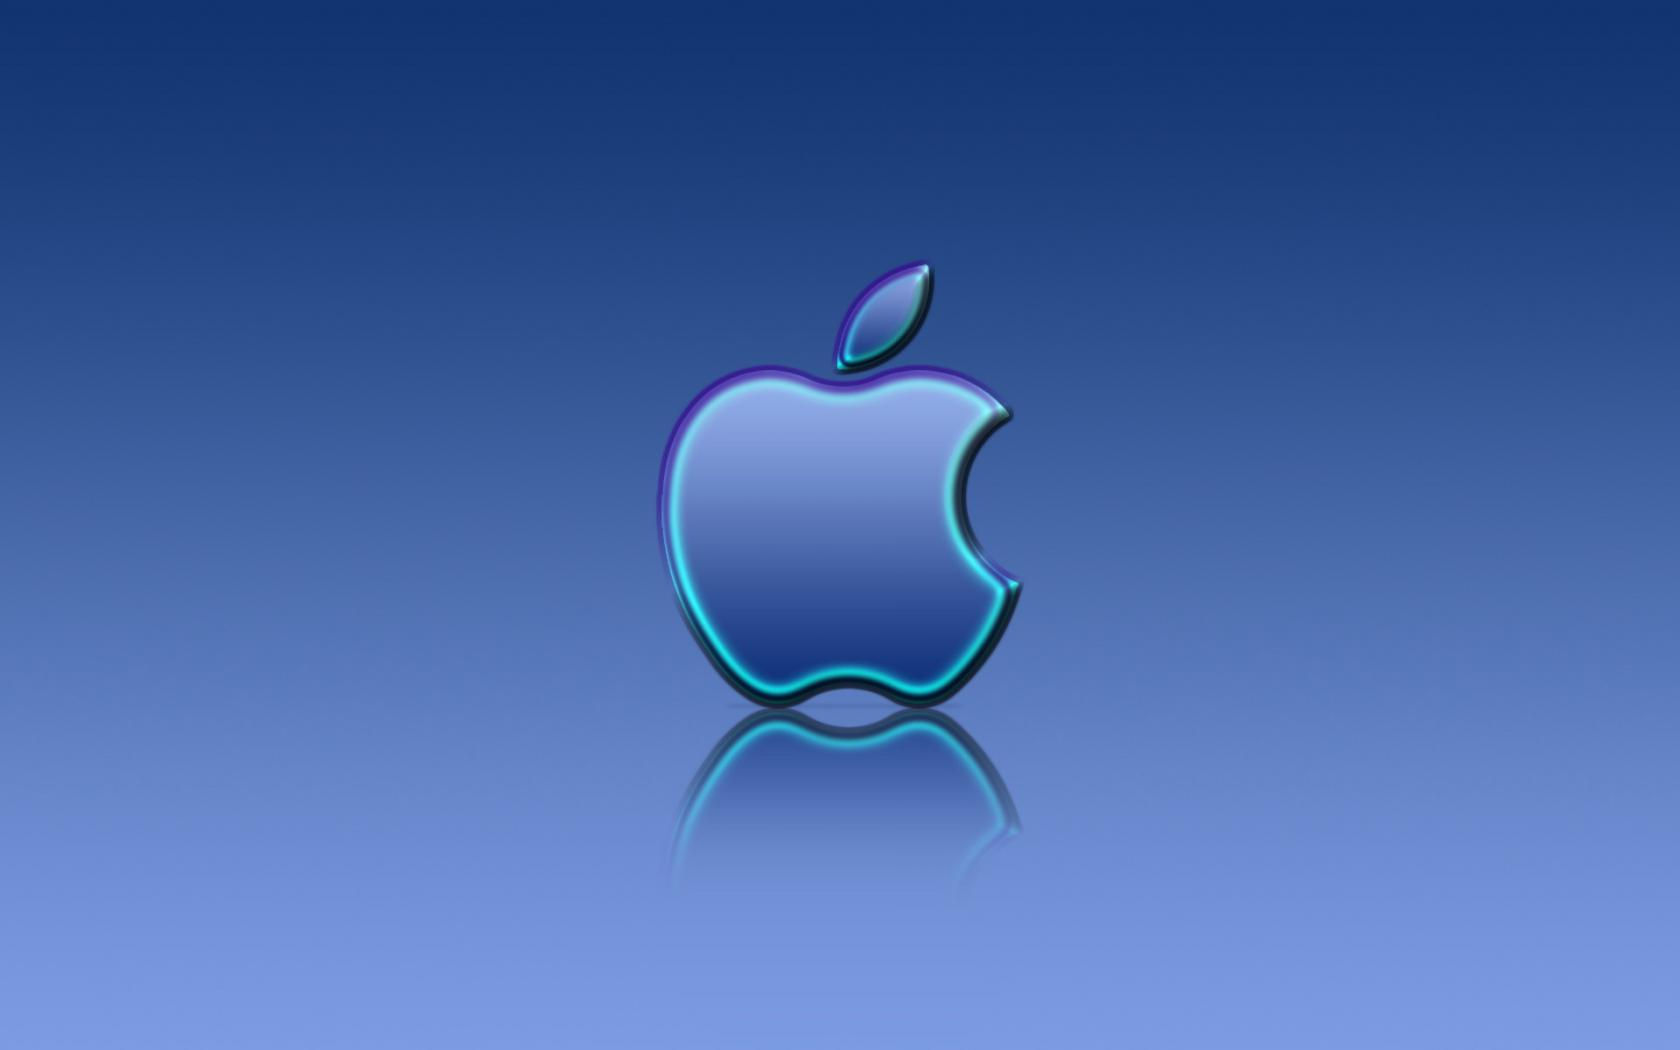 blue apple logo hd - photo #13